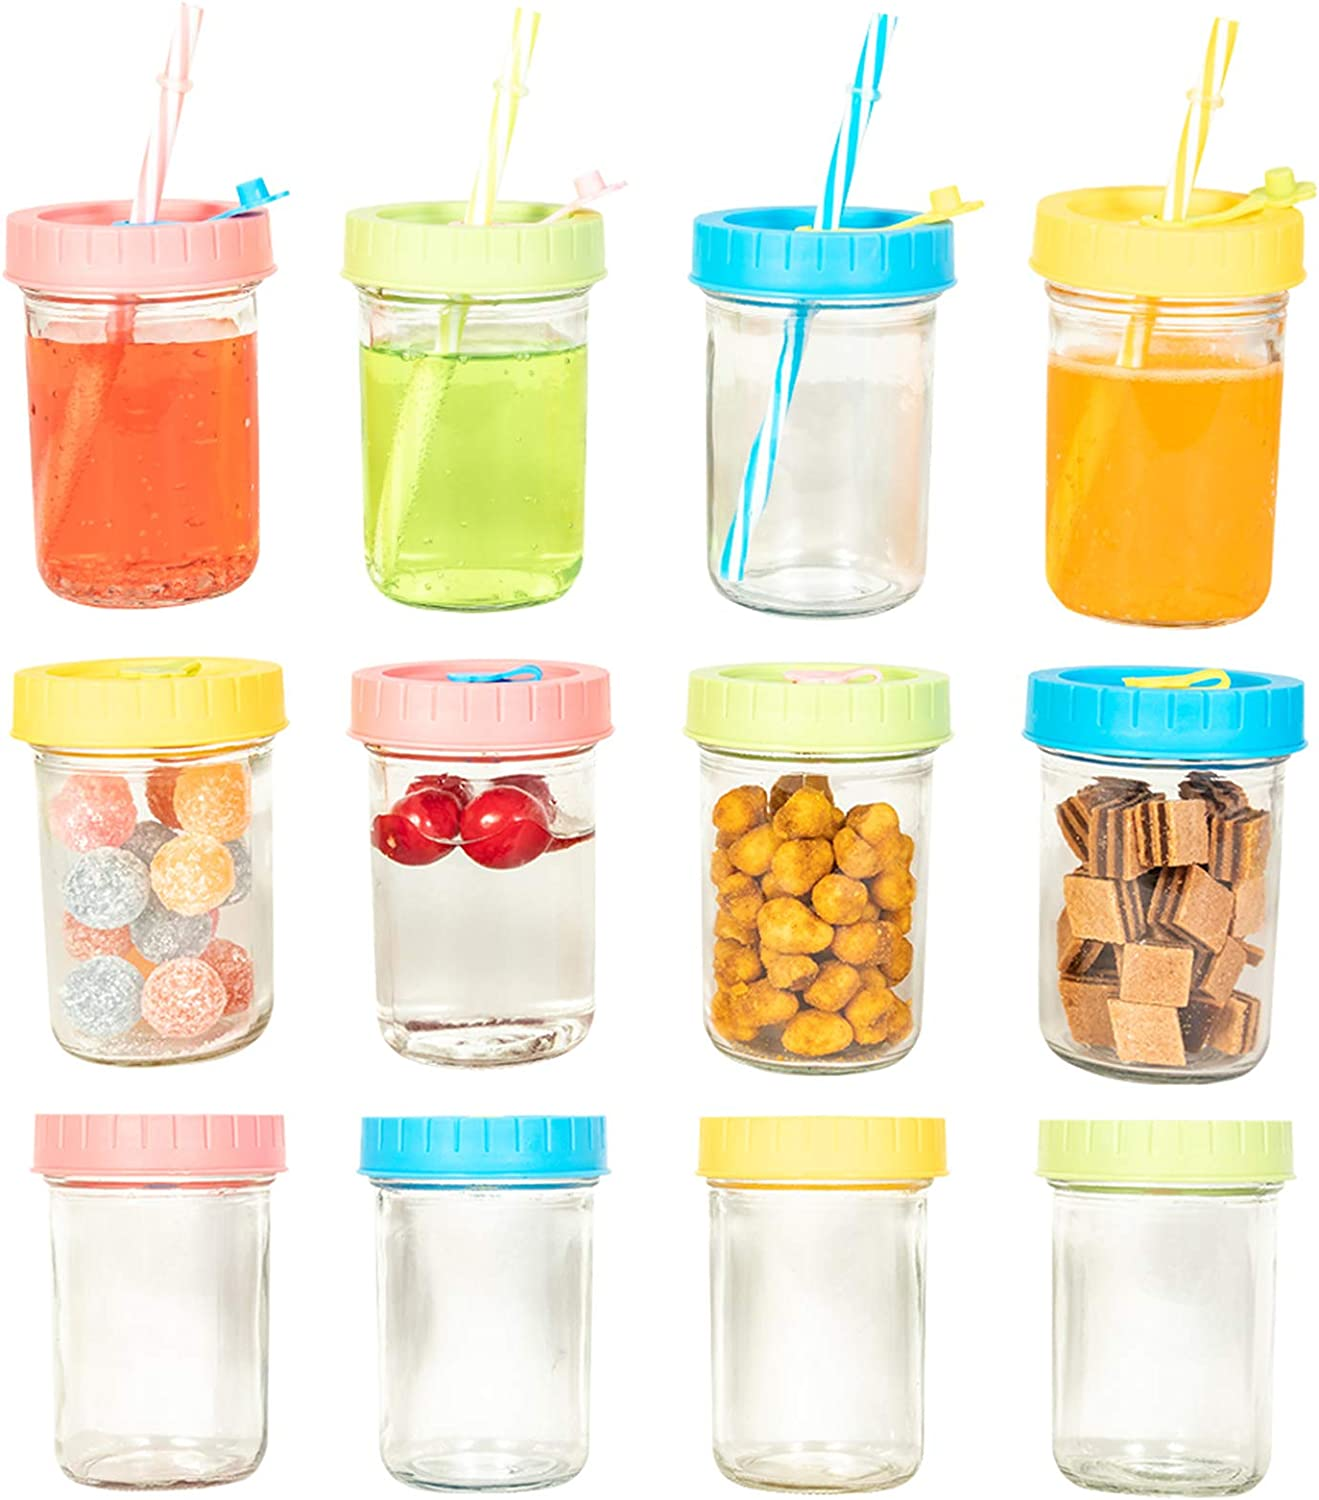 12pcs 8oz Mason Jar Food Storage Container Glass Drinking Bottle Regular Beverage Mouth with Lids Staws Clean Brush Reusable Leakproof Canning For Juice Snack